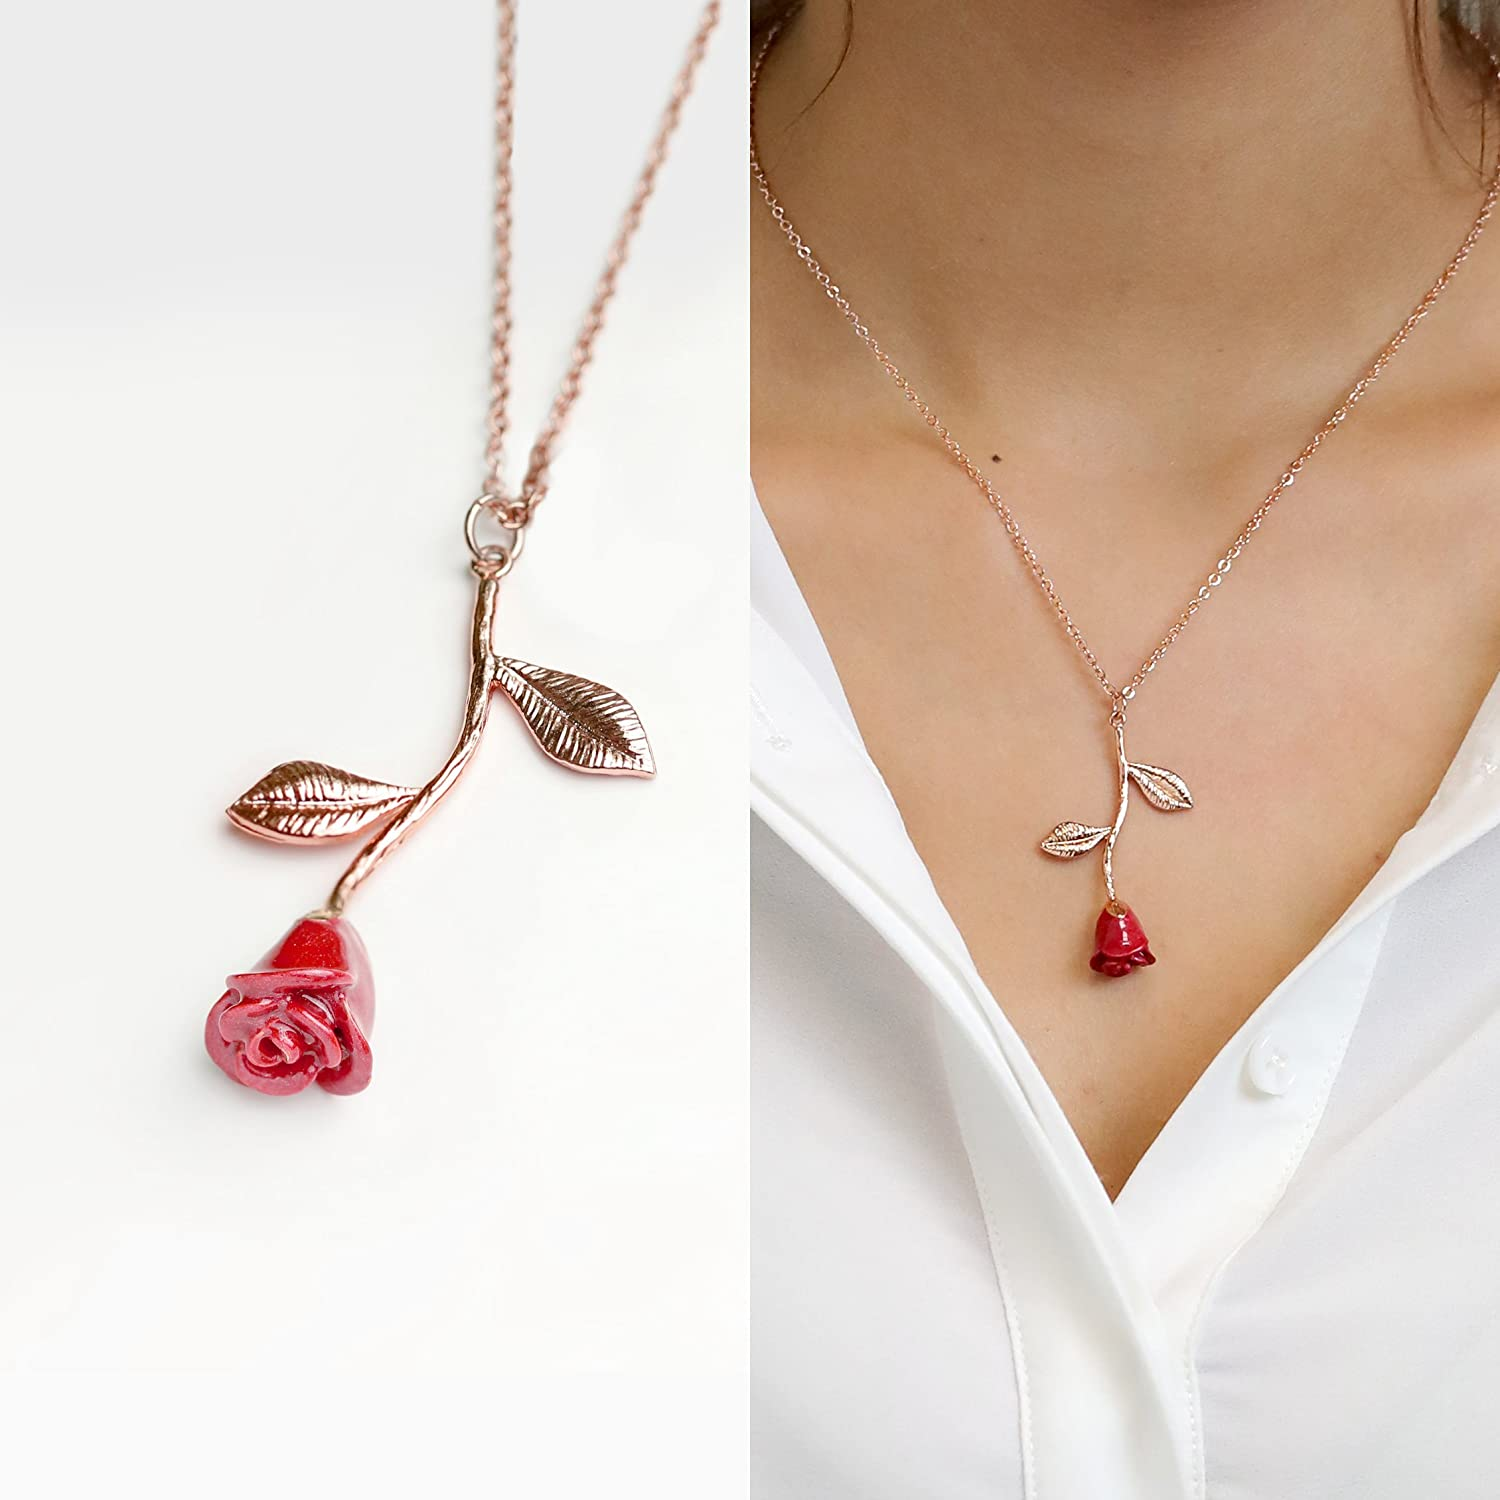 Rose Necklace With Initial Rose Pendant Necklace for Women Gift for Her Custom Necklace